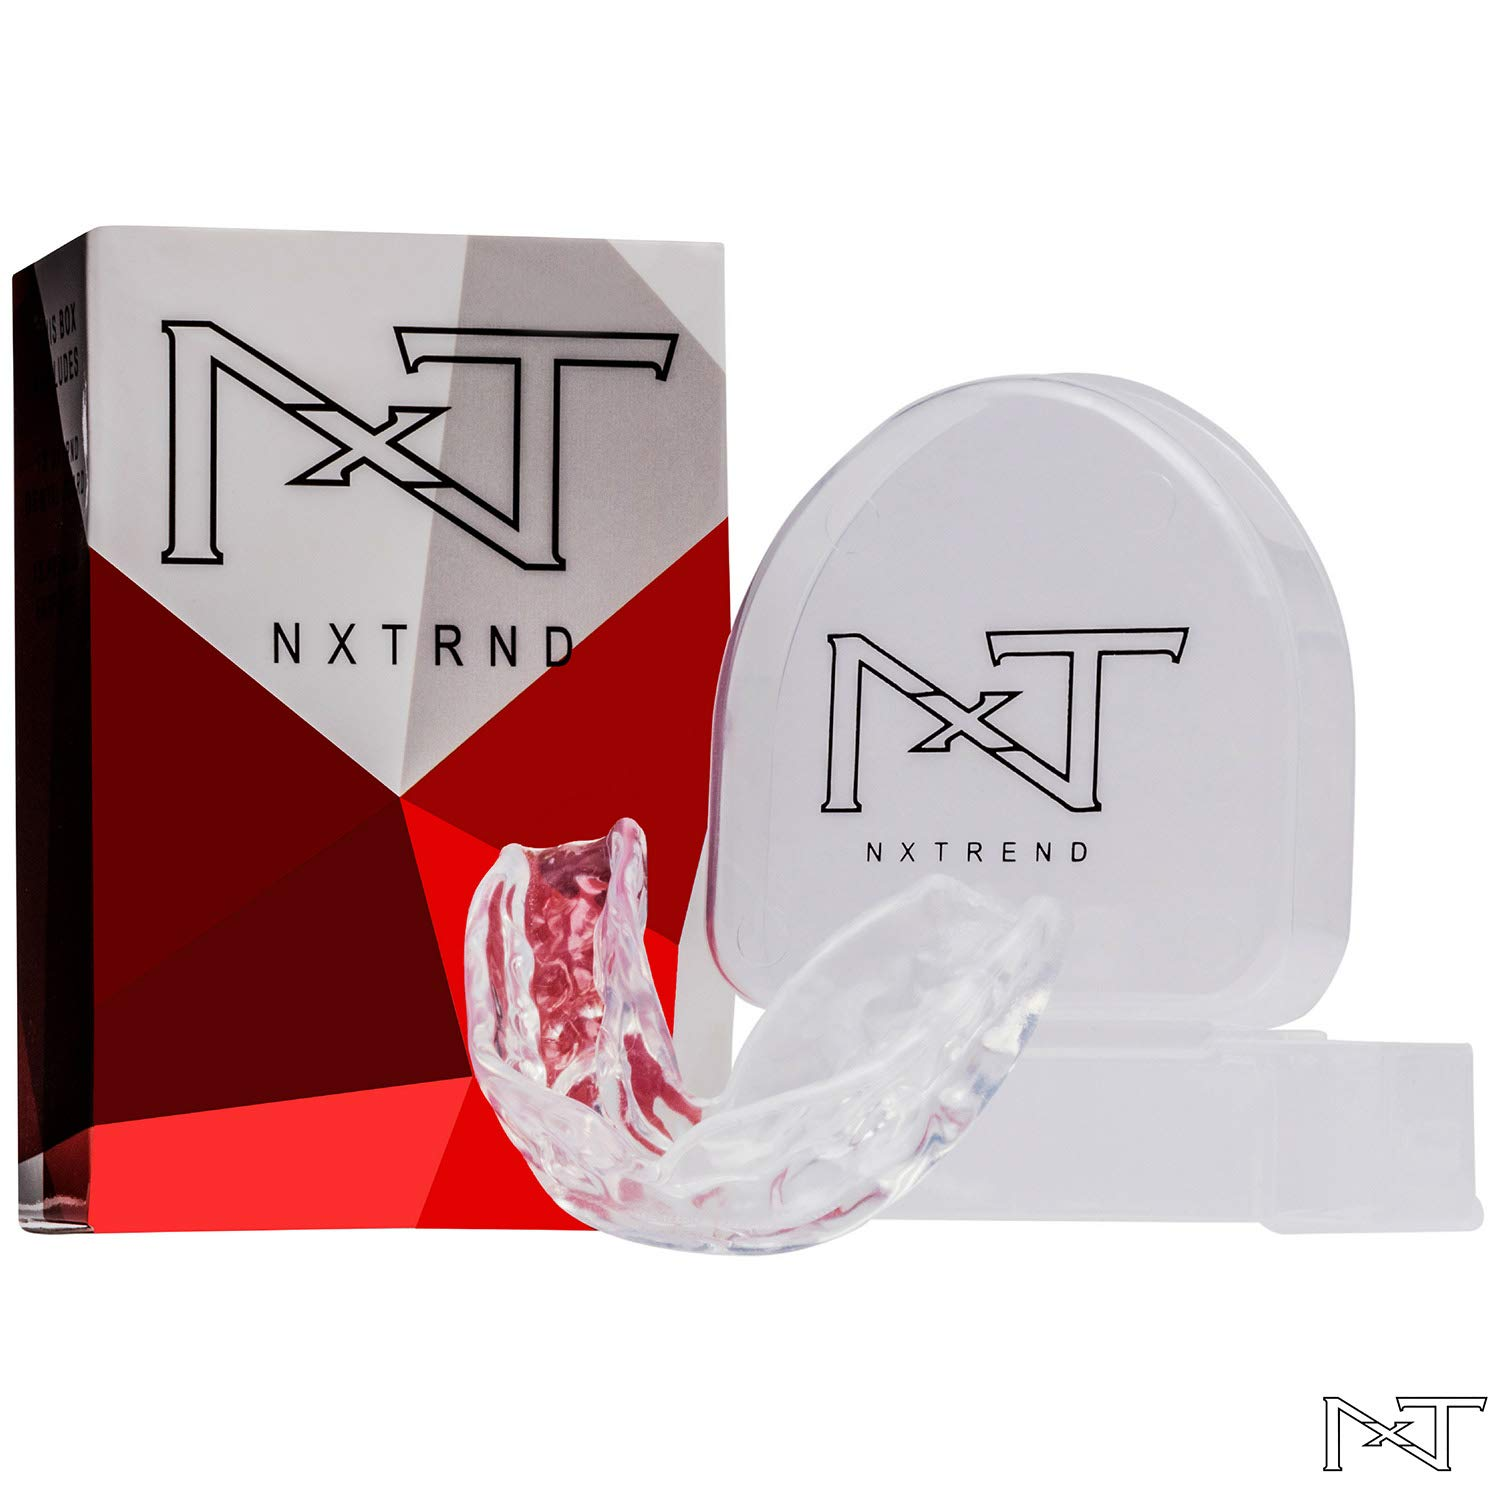 Mouth Guard for Grinding Teeth – Professional Night Guards for Teeth Grinding, Mouth Guard Sports, Dental Sleep Guard Stops TMJ, Bruxism, Teeth Clenching, Anti-Bacterial Case & Earplugs Included by NXTRND USA (Image #1)